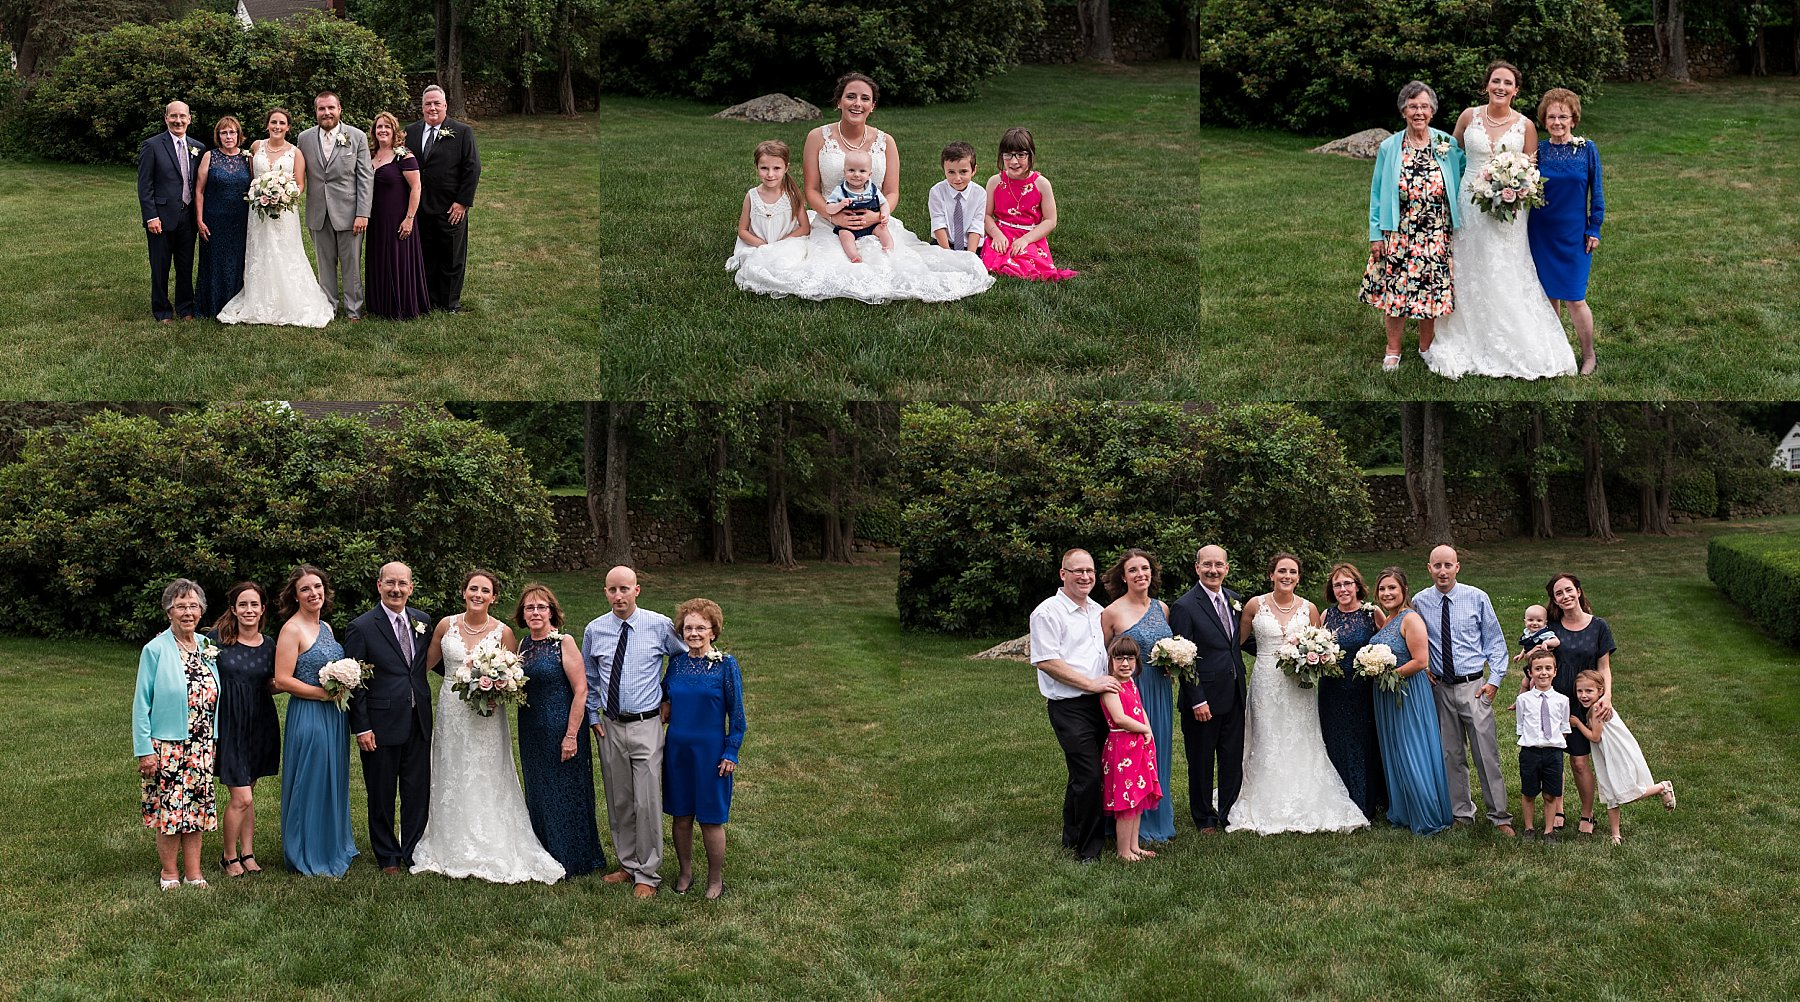 Family formals in the garden at the Hillstead Museum